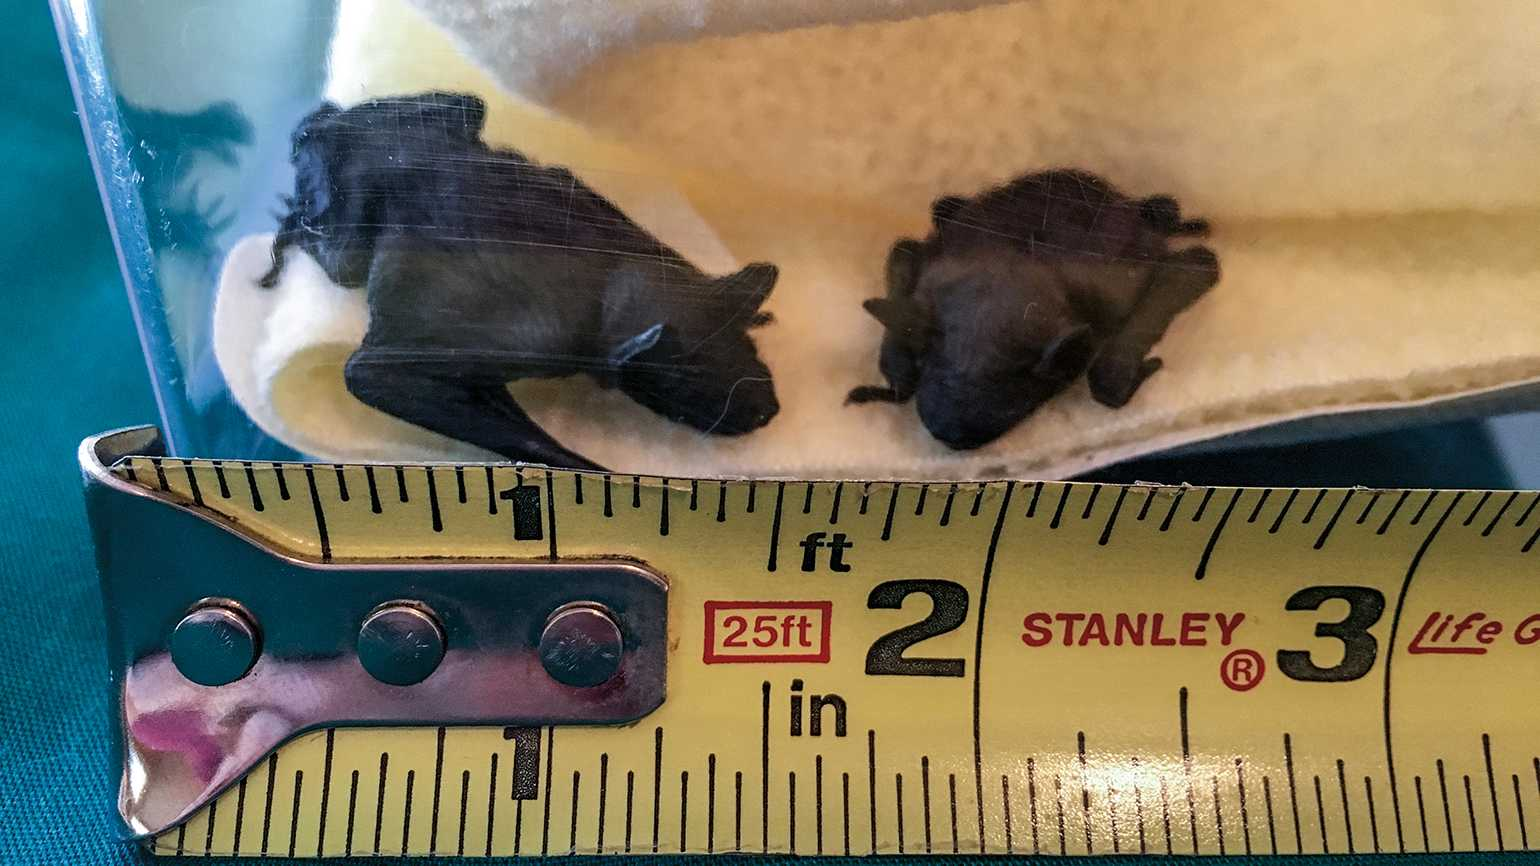 Twin baby bats weighing three grams each